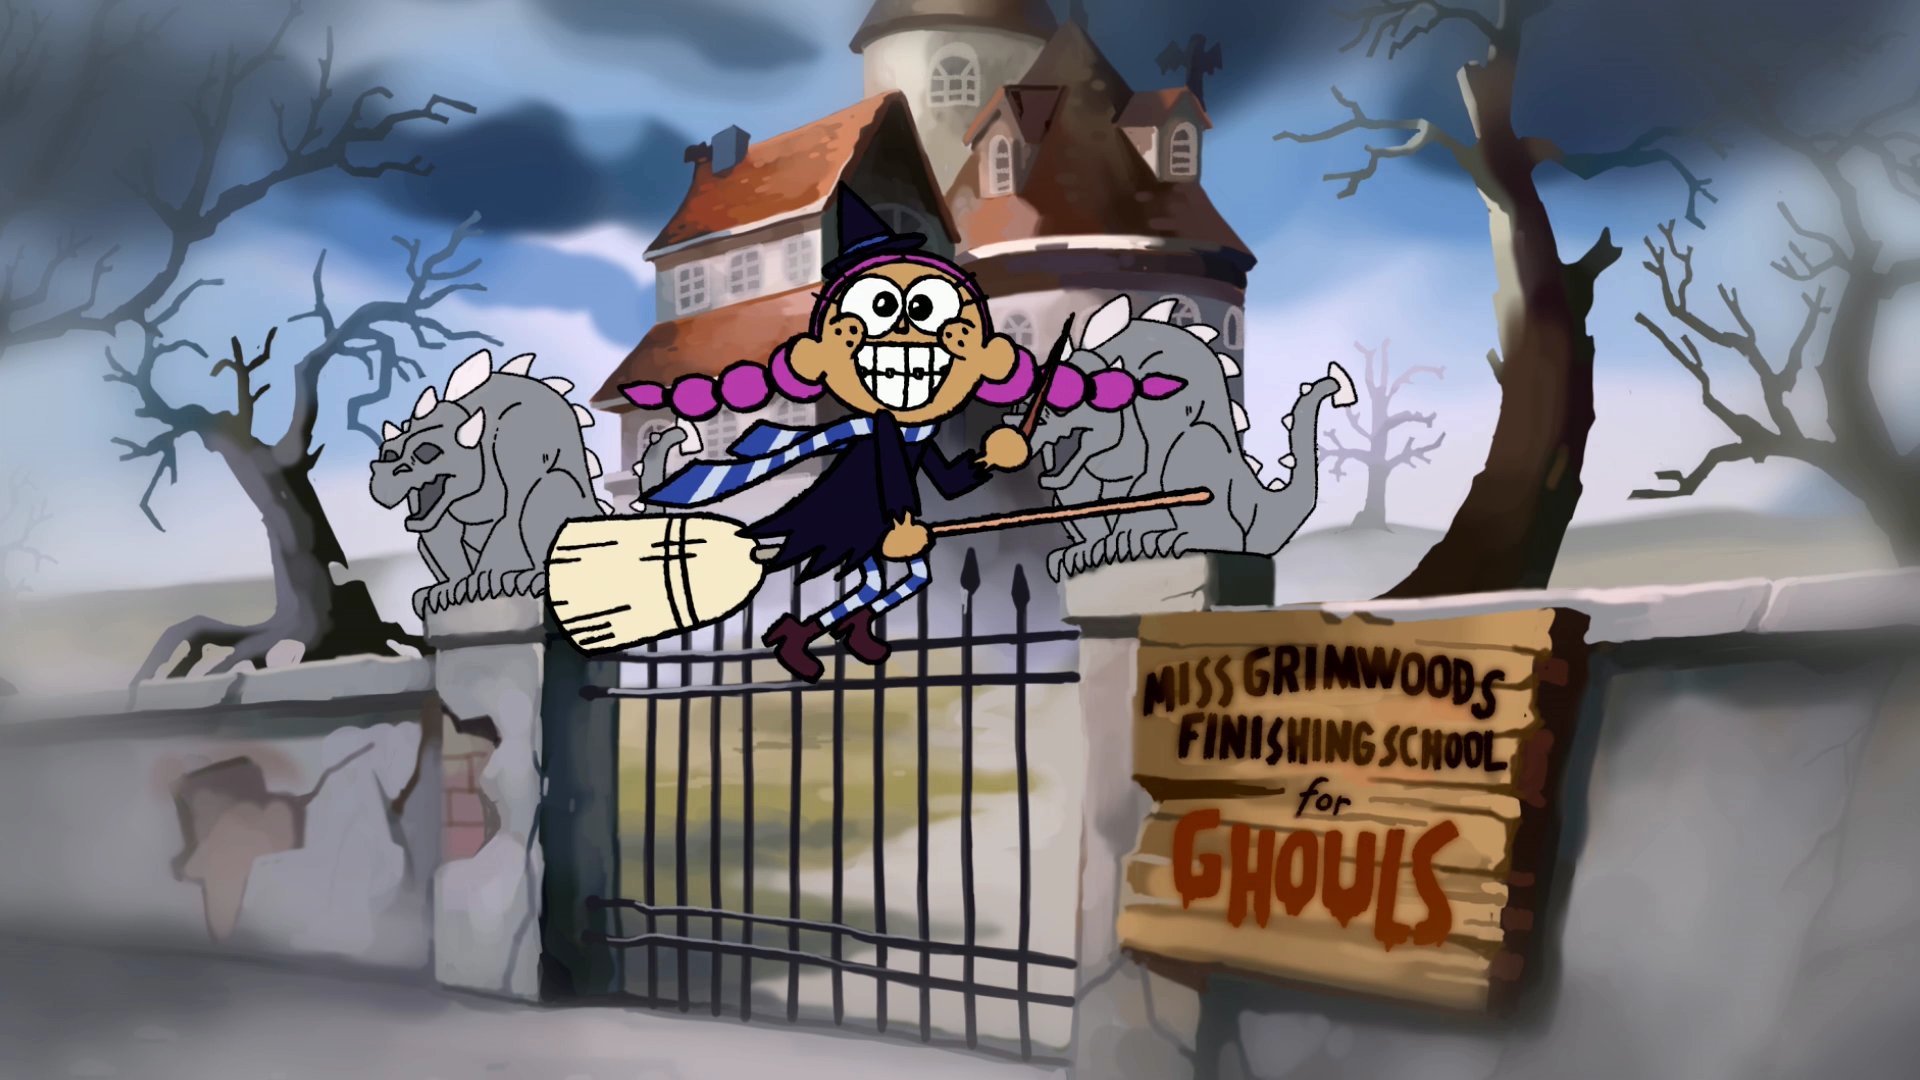 Miss Grimwood's Finishing School for Ghouls